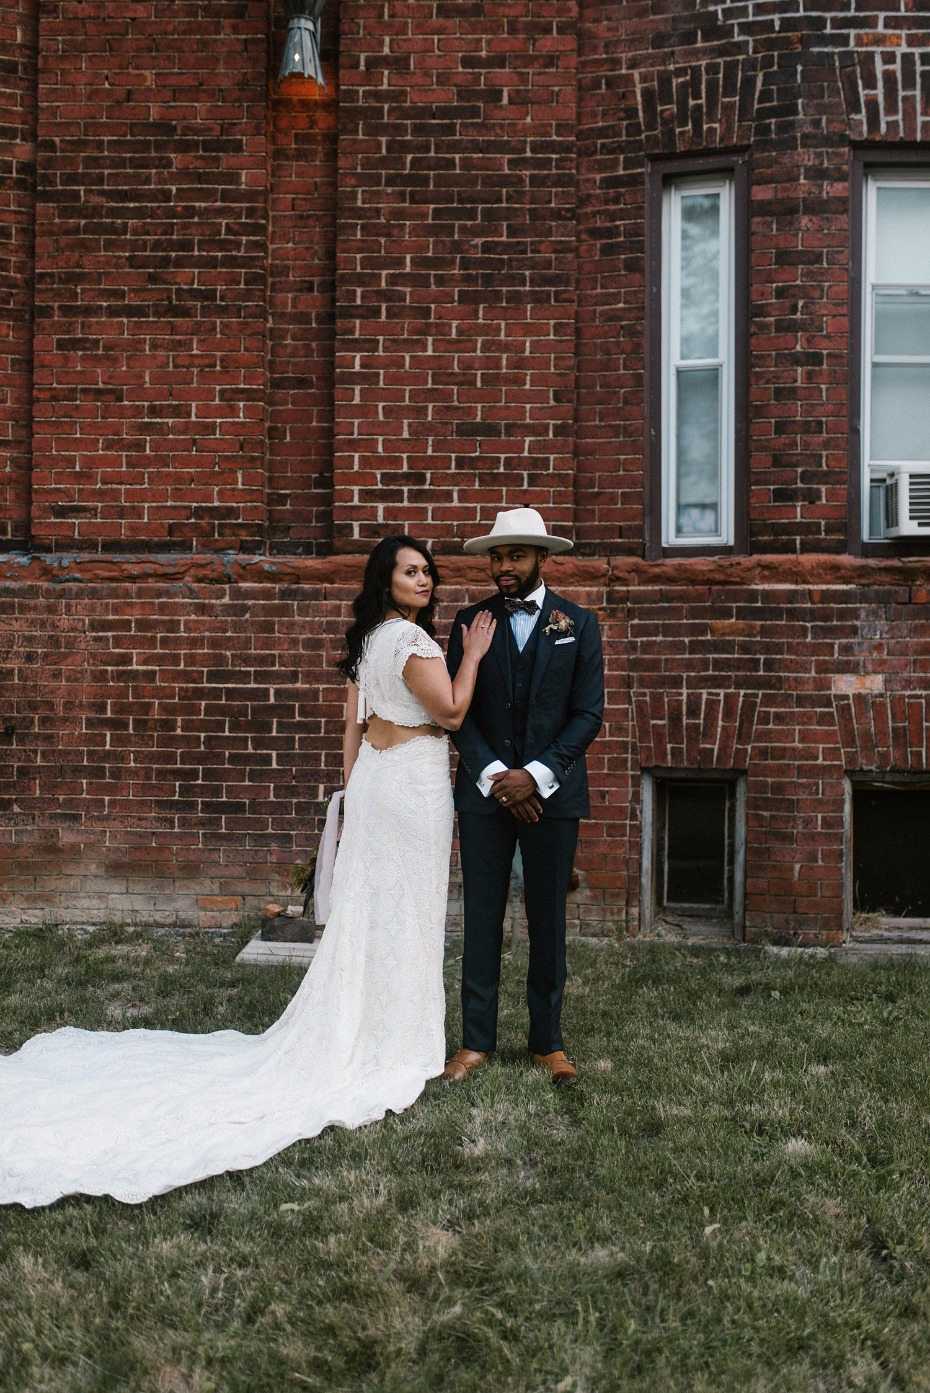 Fall at-home elopement ideas from Detroit